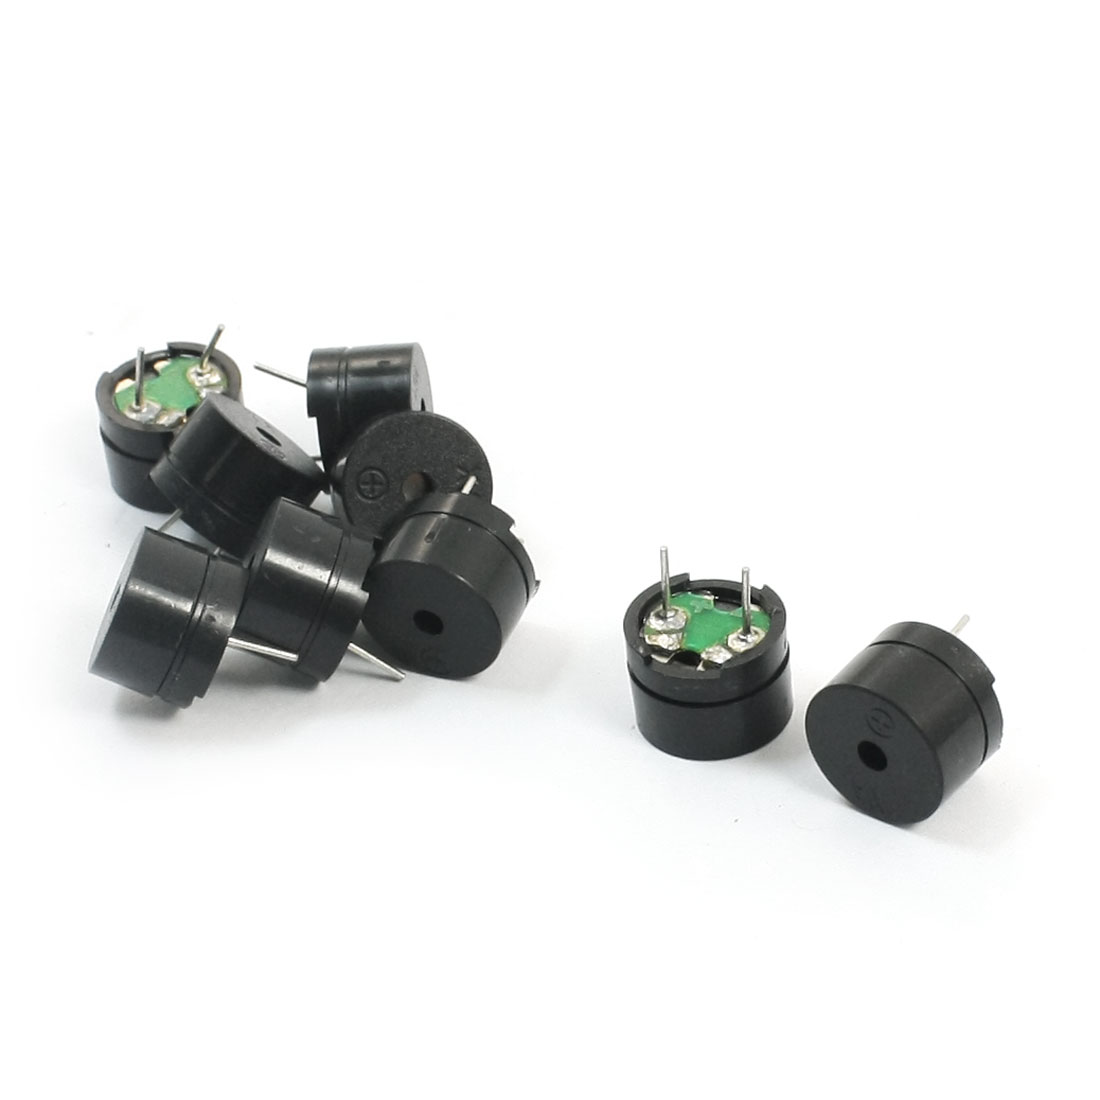 8Pcs 12mm x 8mm 2 Terminal Through Hole Mounting Cylinder Black Plastic Industrial Passive Electronic Alarm Buzzer 42 Ohm